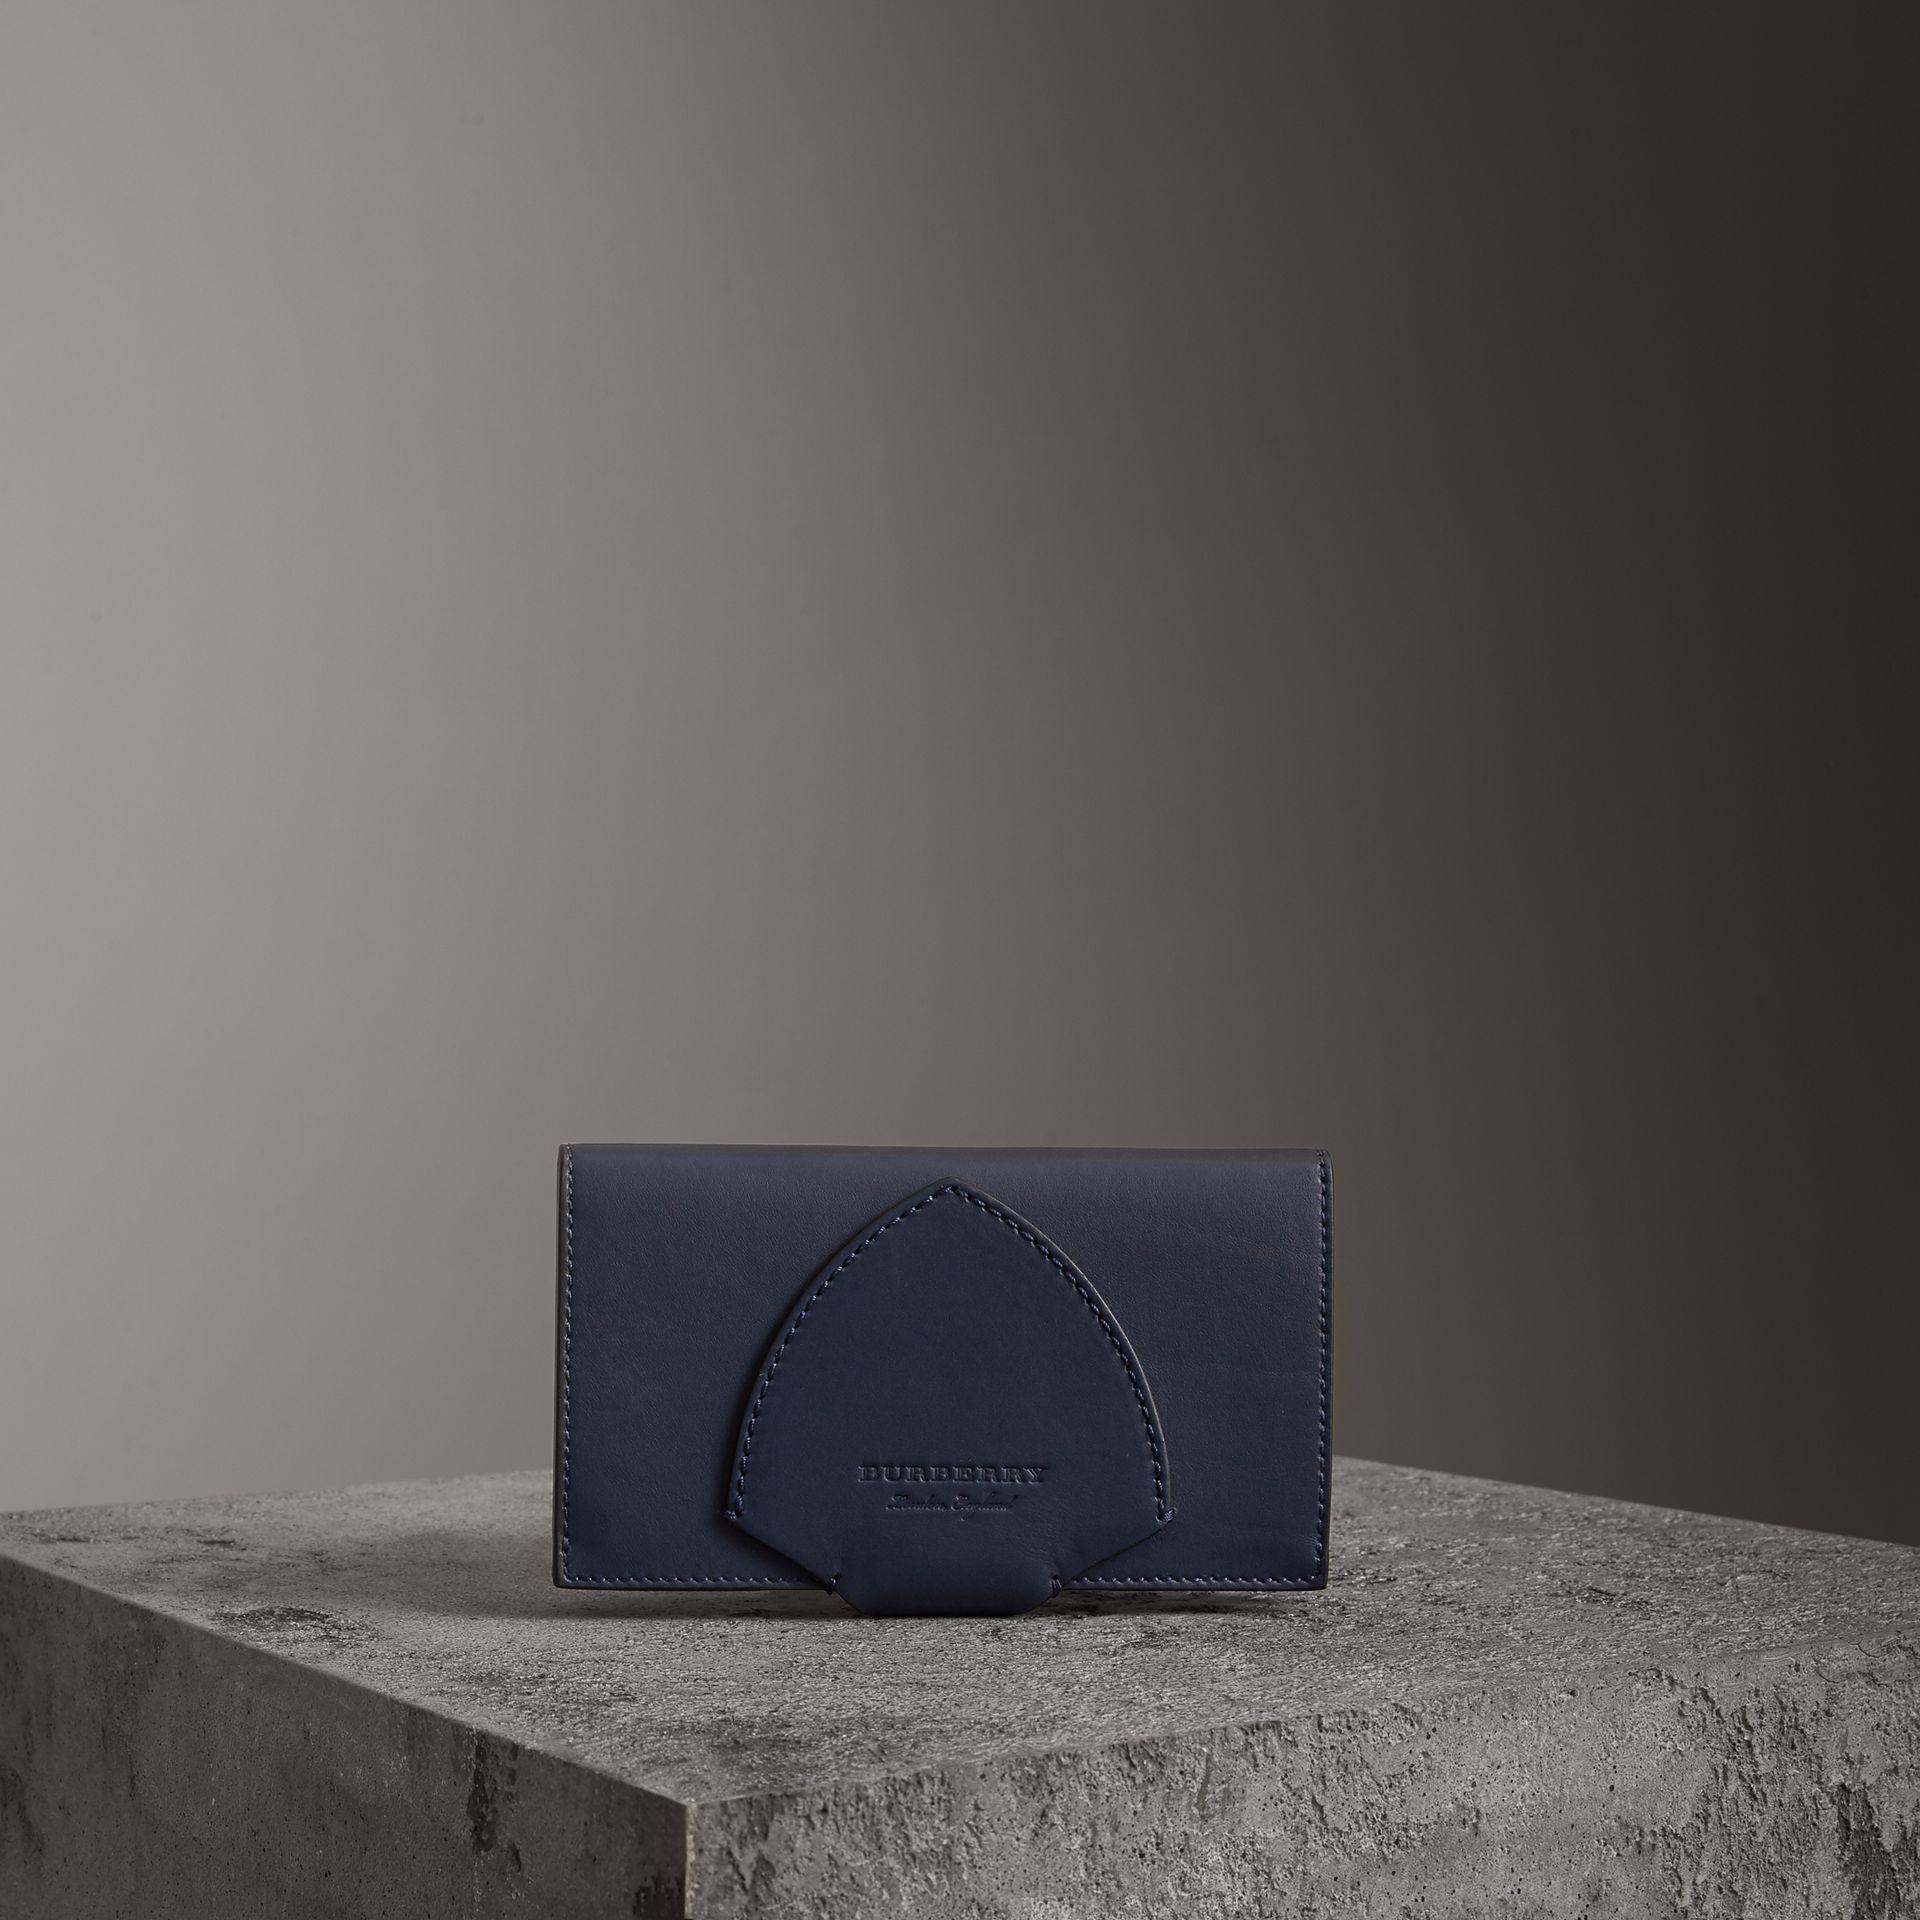 Equestrian Shield Two-tone Leather Continental Wallet in Mid Indigo - Women | Burberry - gallery image 0